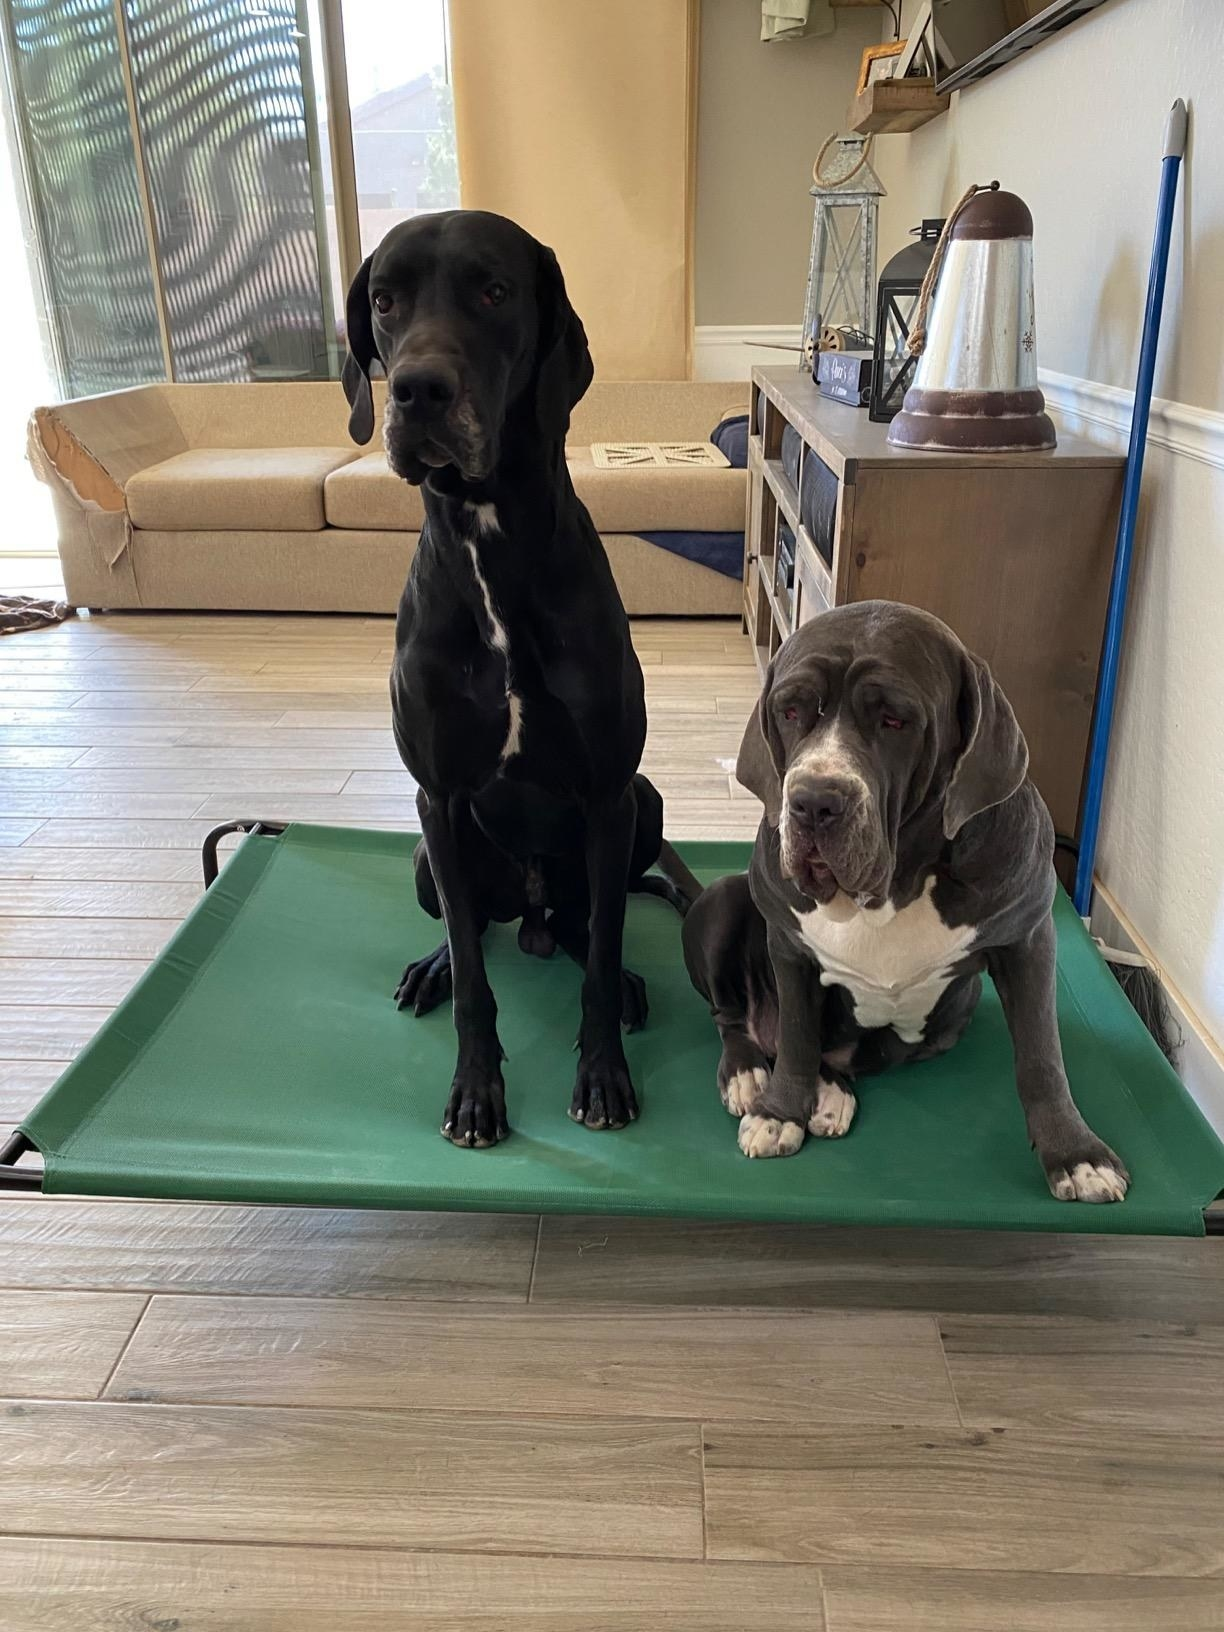 Two large dogs sit comfortably on the bed, which is elevated and has a metal frame